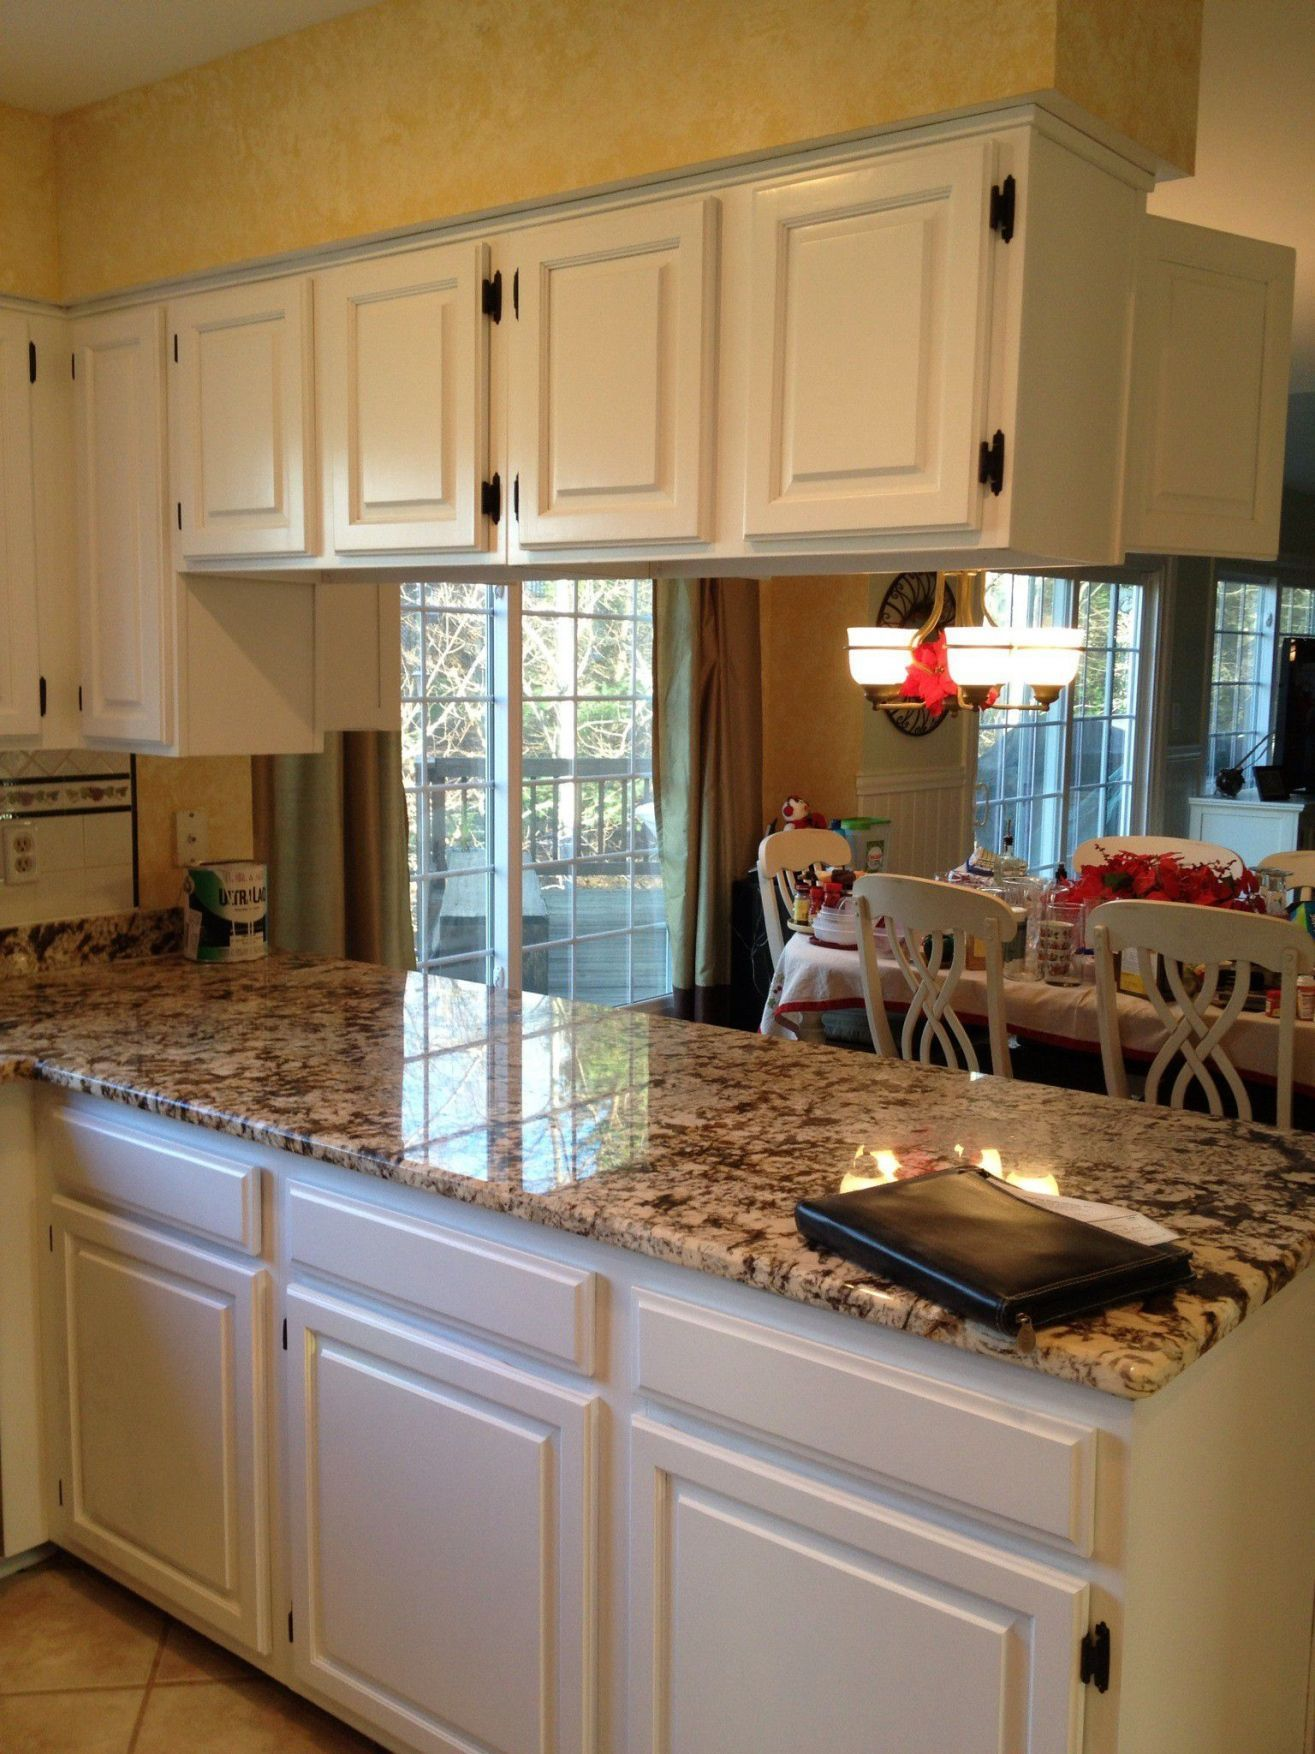 The Pluses and Minuses of a Kitchen With Granite Countertops ...